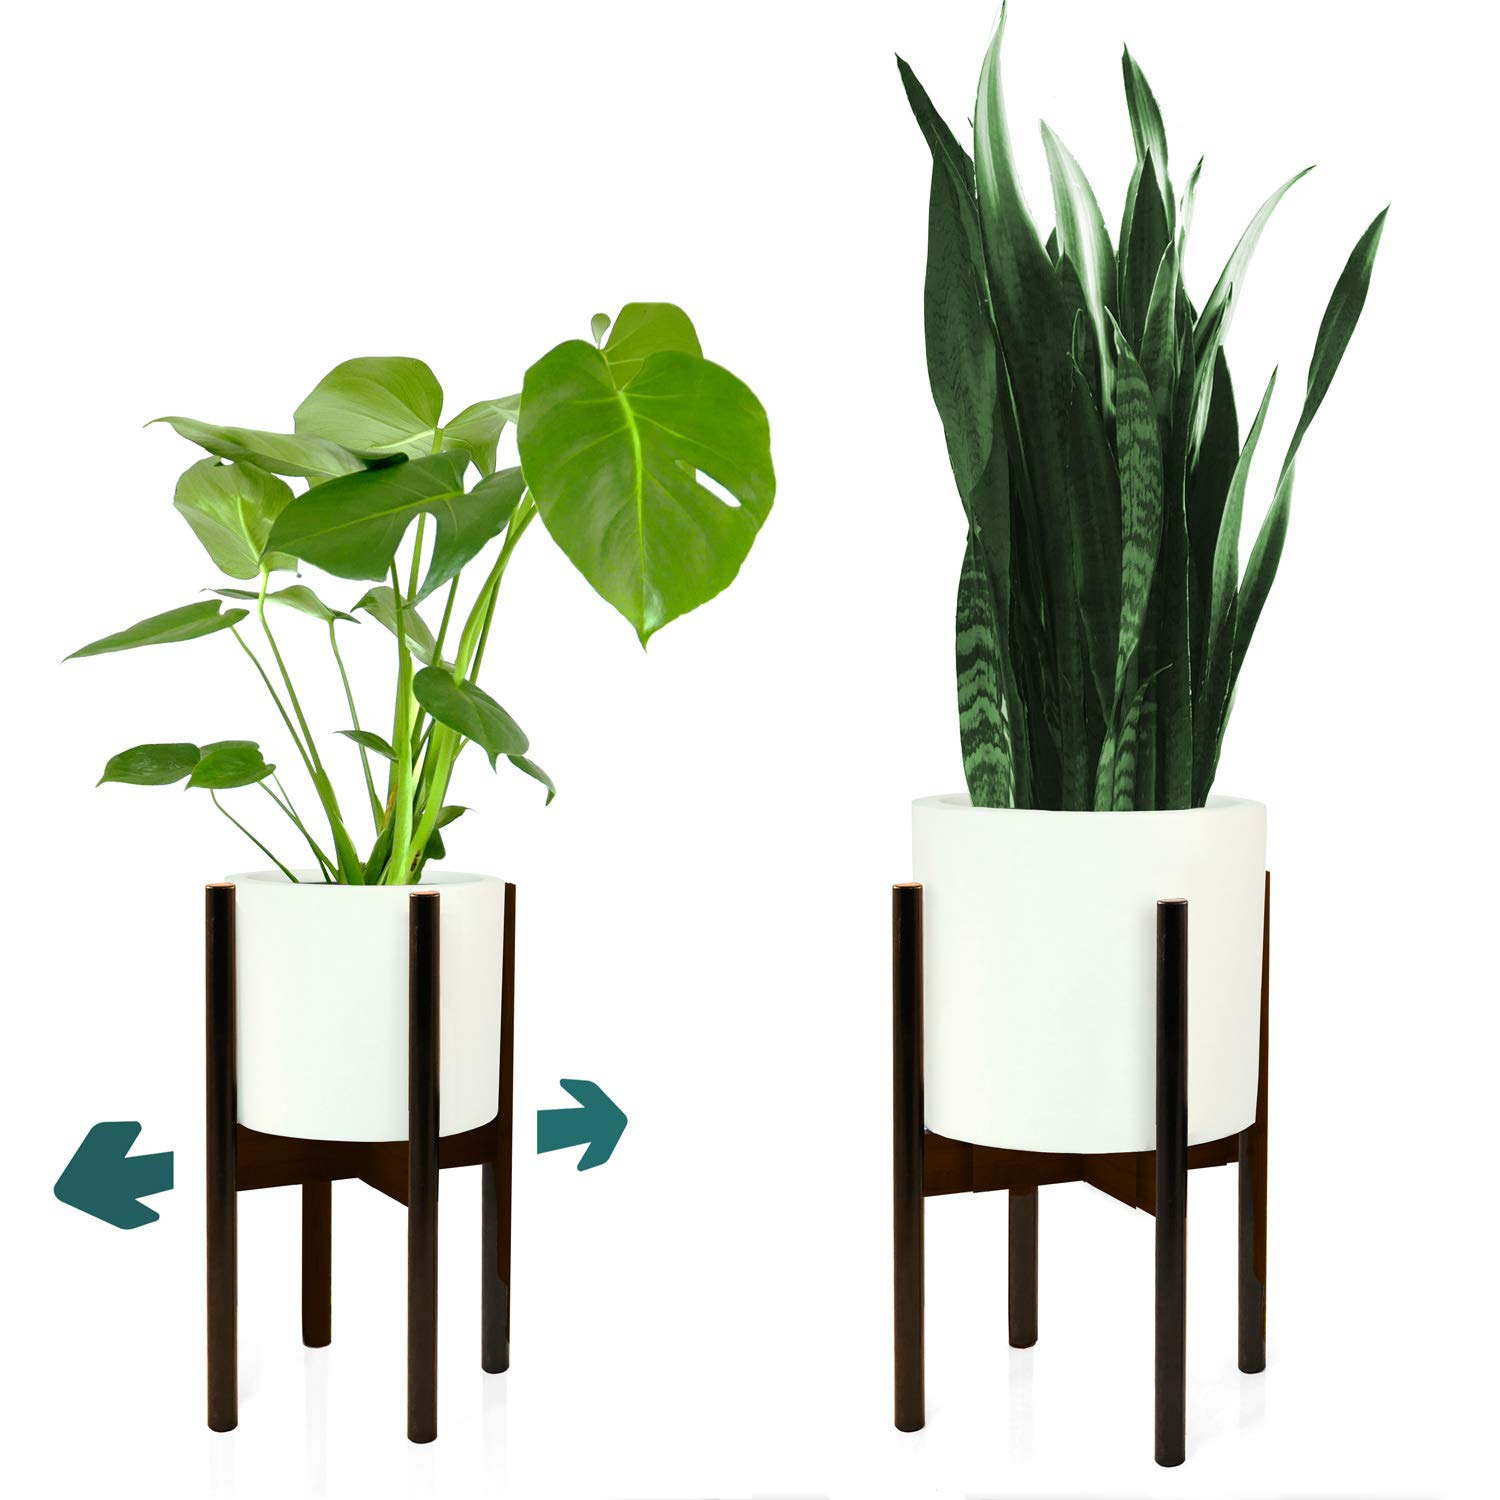 FOX & FERN Mid-Century Modern Plant Stand - Adjustable Width 20cm up to 30cm - Bamboo - EXCLUDING White Ceramic Planter Pot